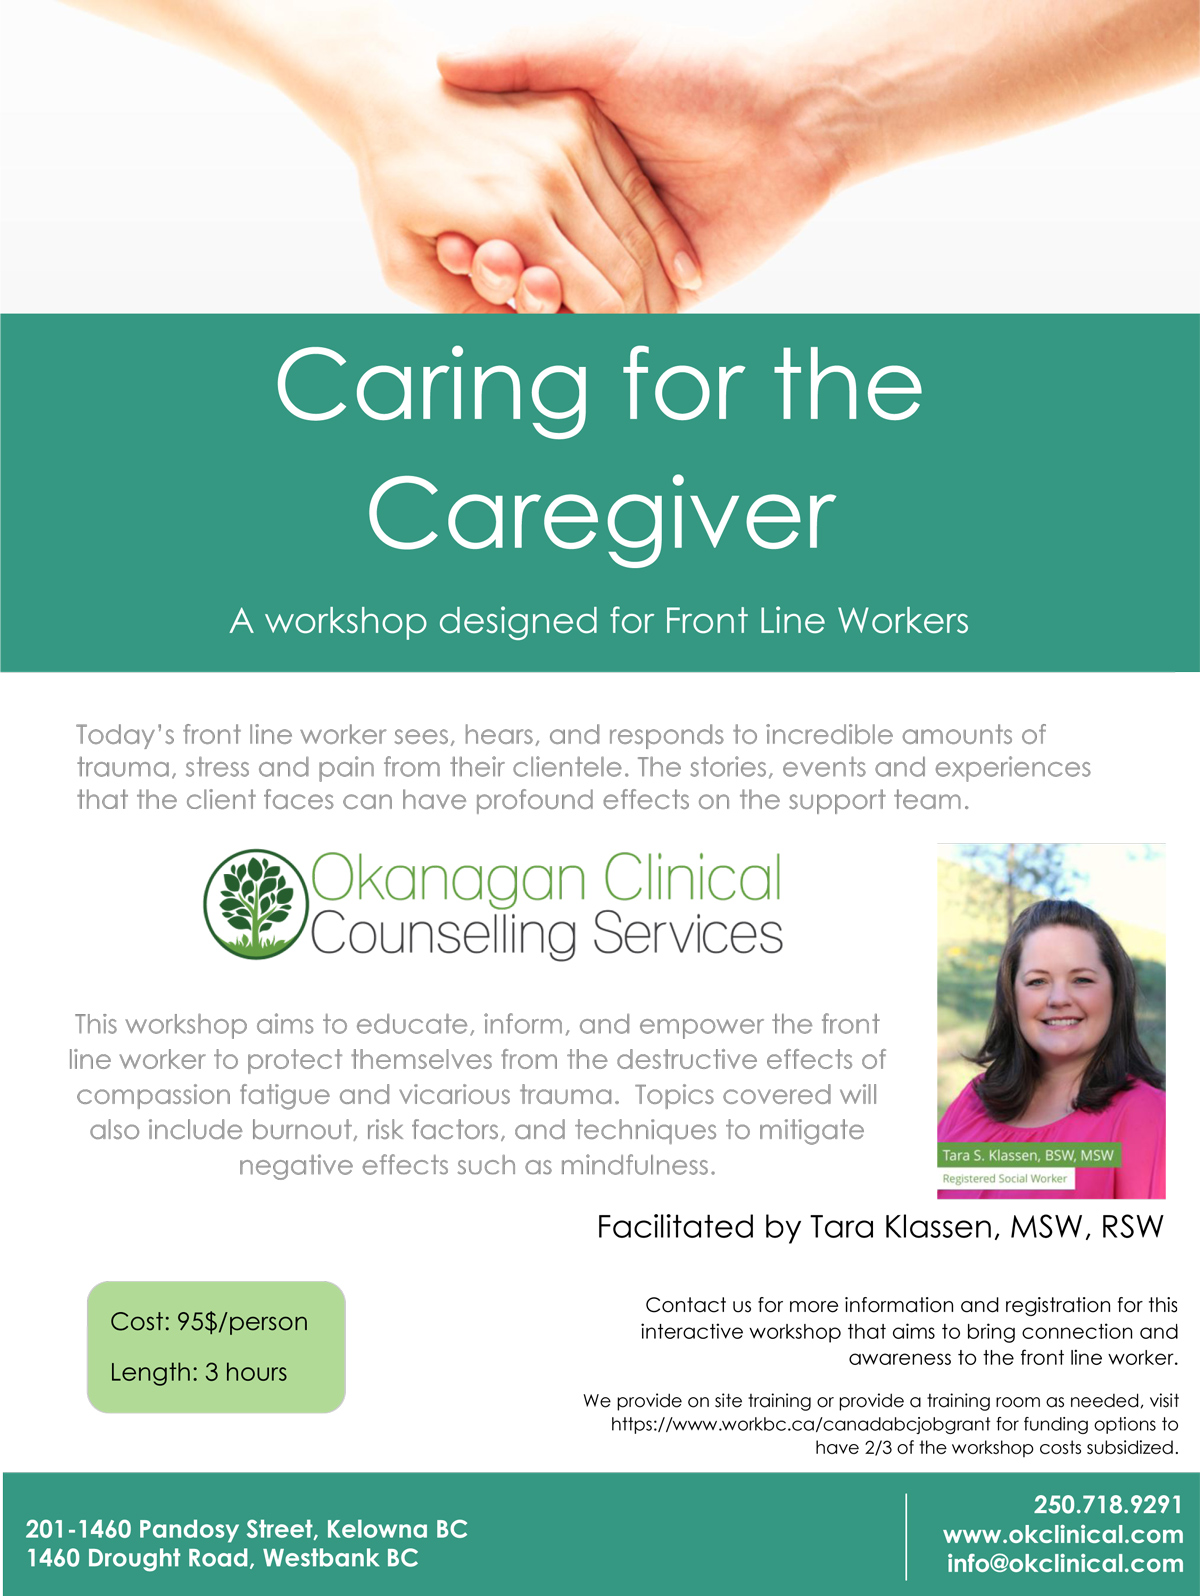 Caring-for-the-Caregiver-Flyer-doc